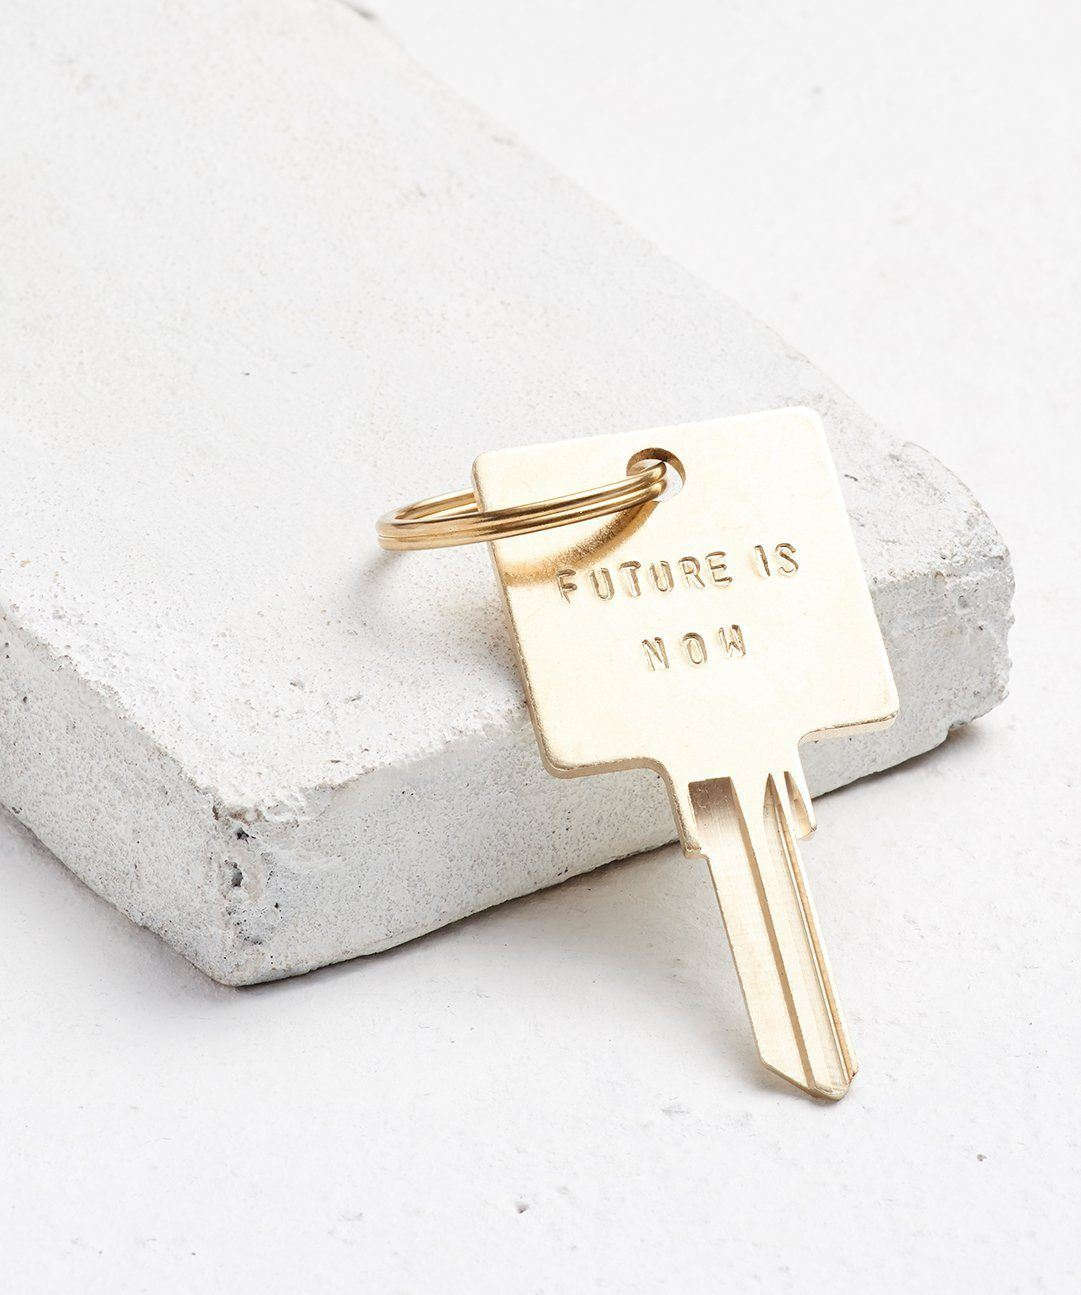 FUTURE IS... Gold Original Keychain Key Chain The Giving Keys NOW Gold